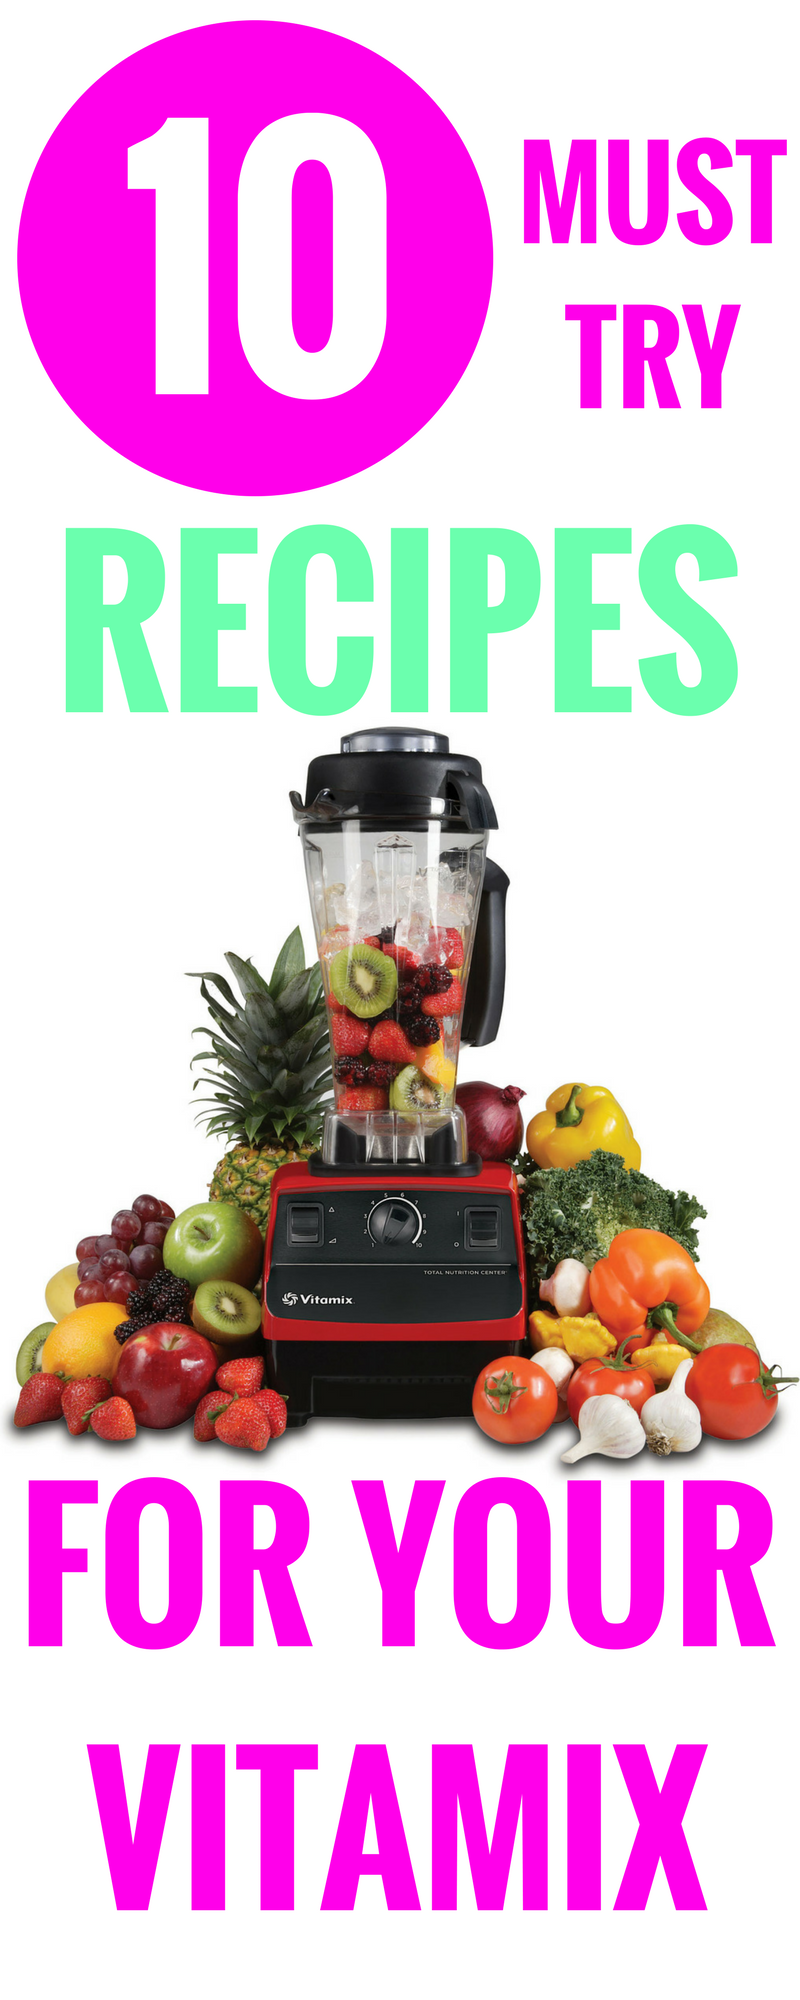 10 Must Try Recipes For Your Vitamix - Vitamix Recipes - Recipe Ideas - Blender Recipes - Communikait by Kait Hanson